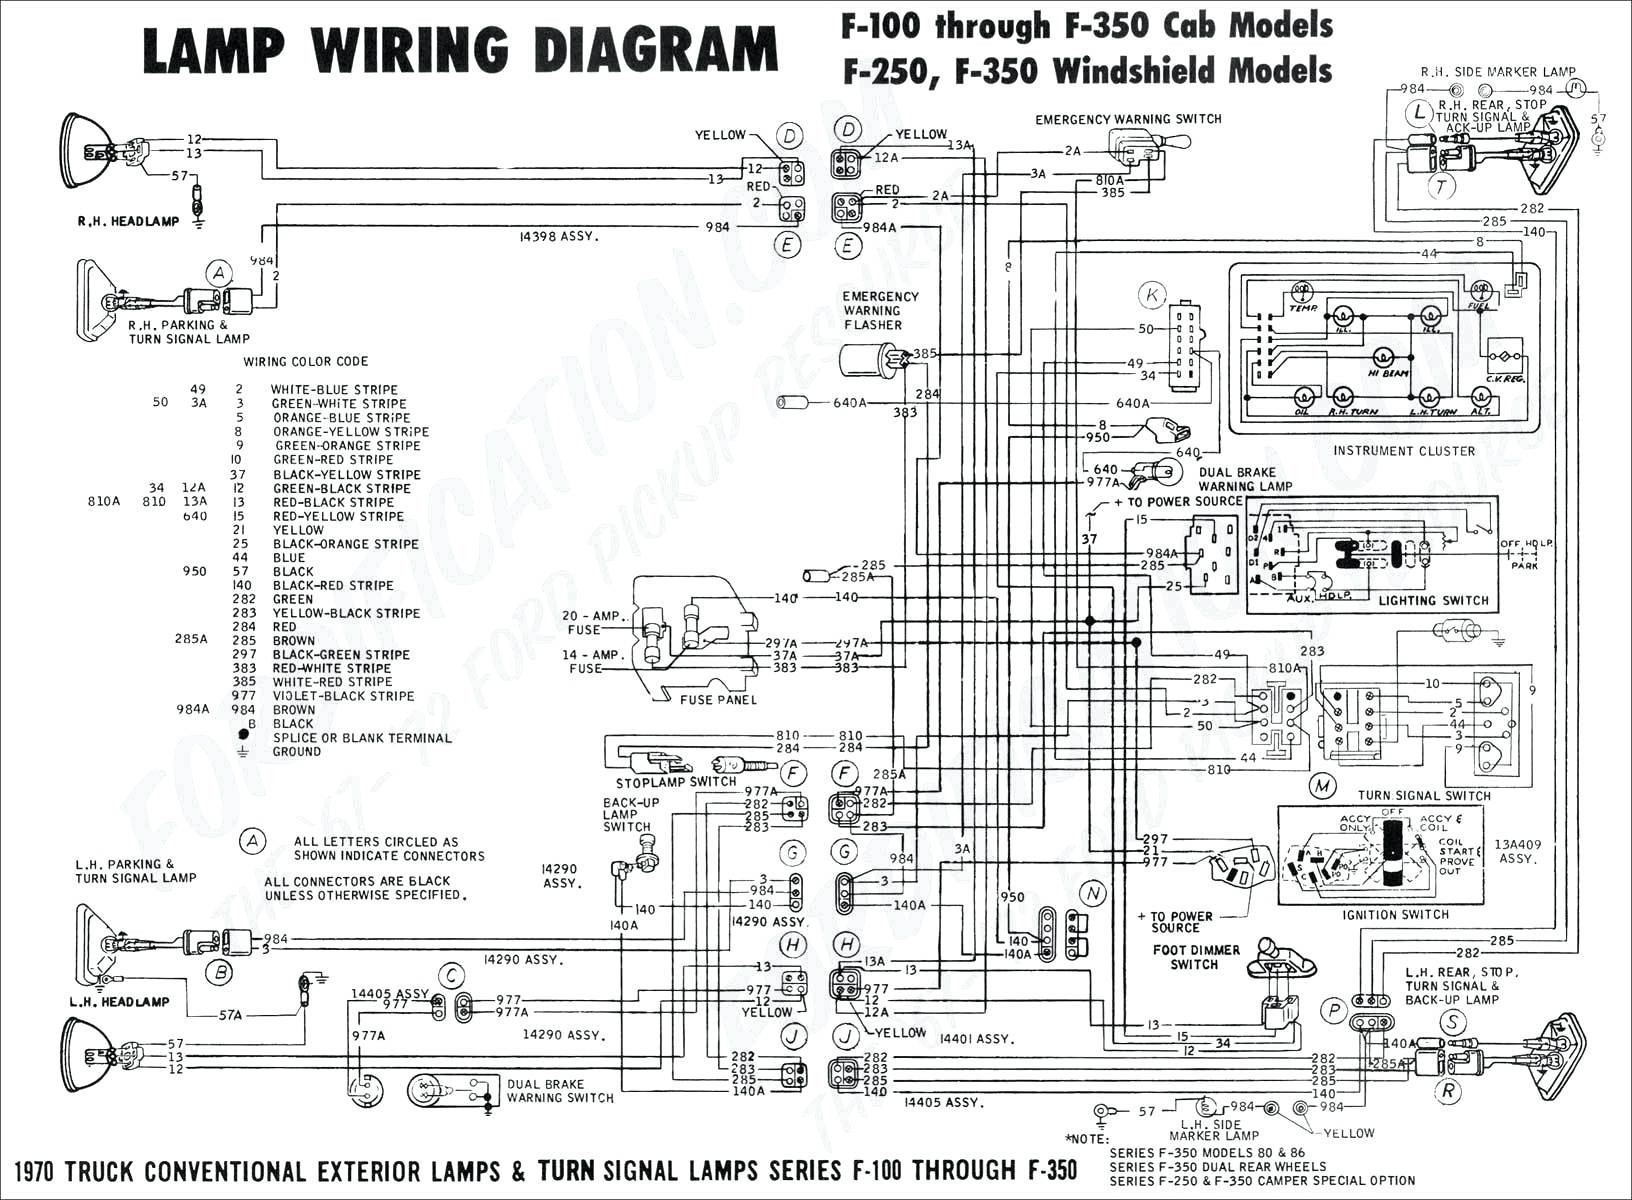 chevy express trailer wiring diagram Download-Chevy Silverado Trailer Wiring Diagram 2005 Chevy Silverado Trailer Wiring Diagram ford Resize Gmc Ideas 18-h